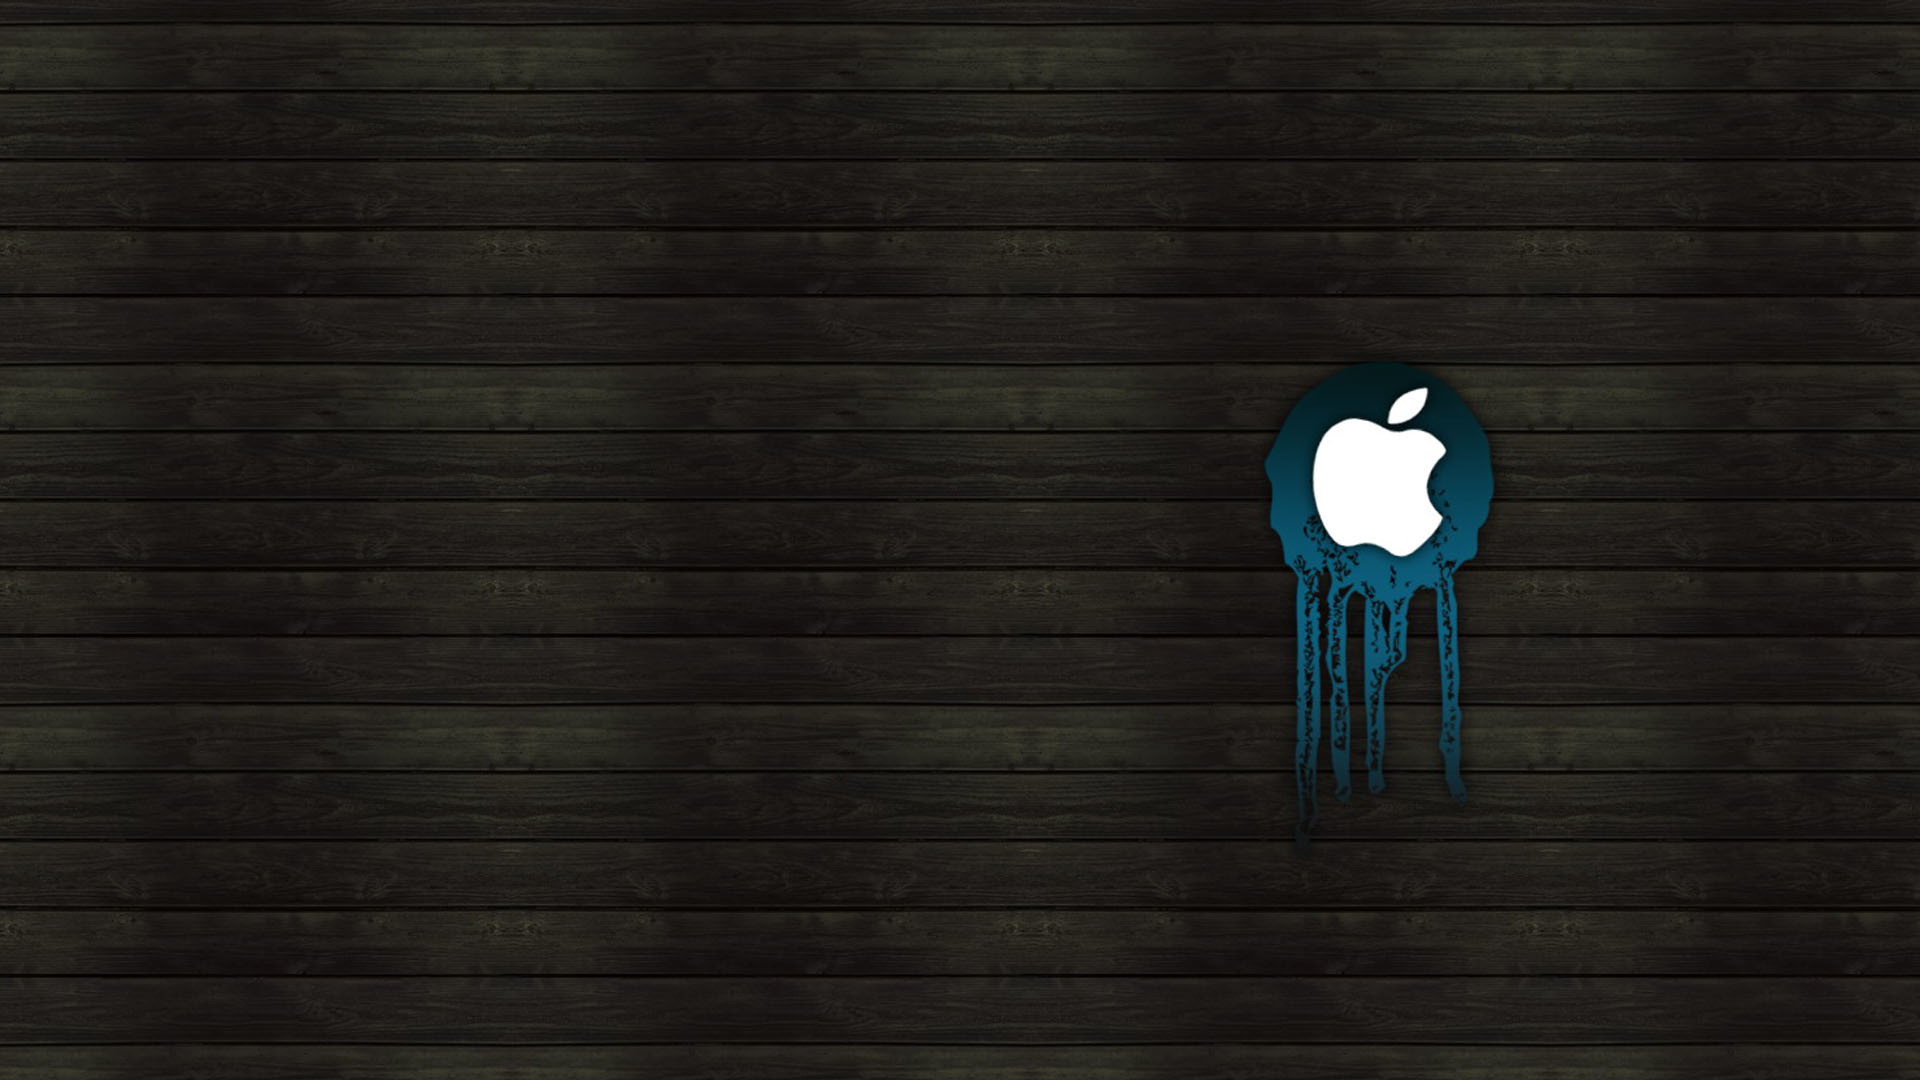 Mac Book Background (63+ images)